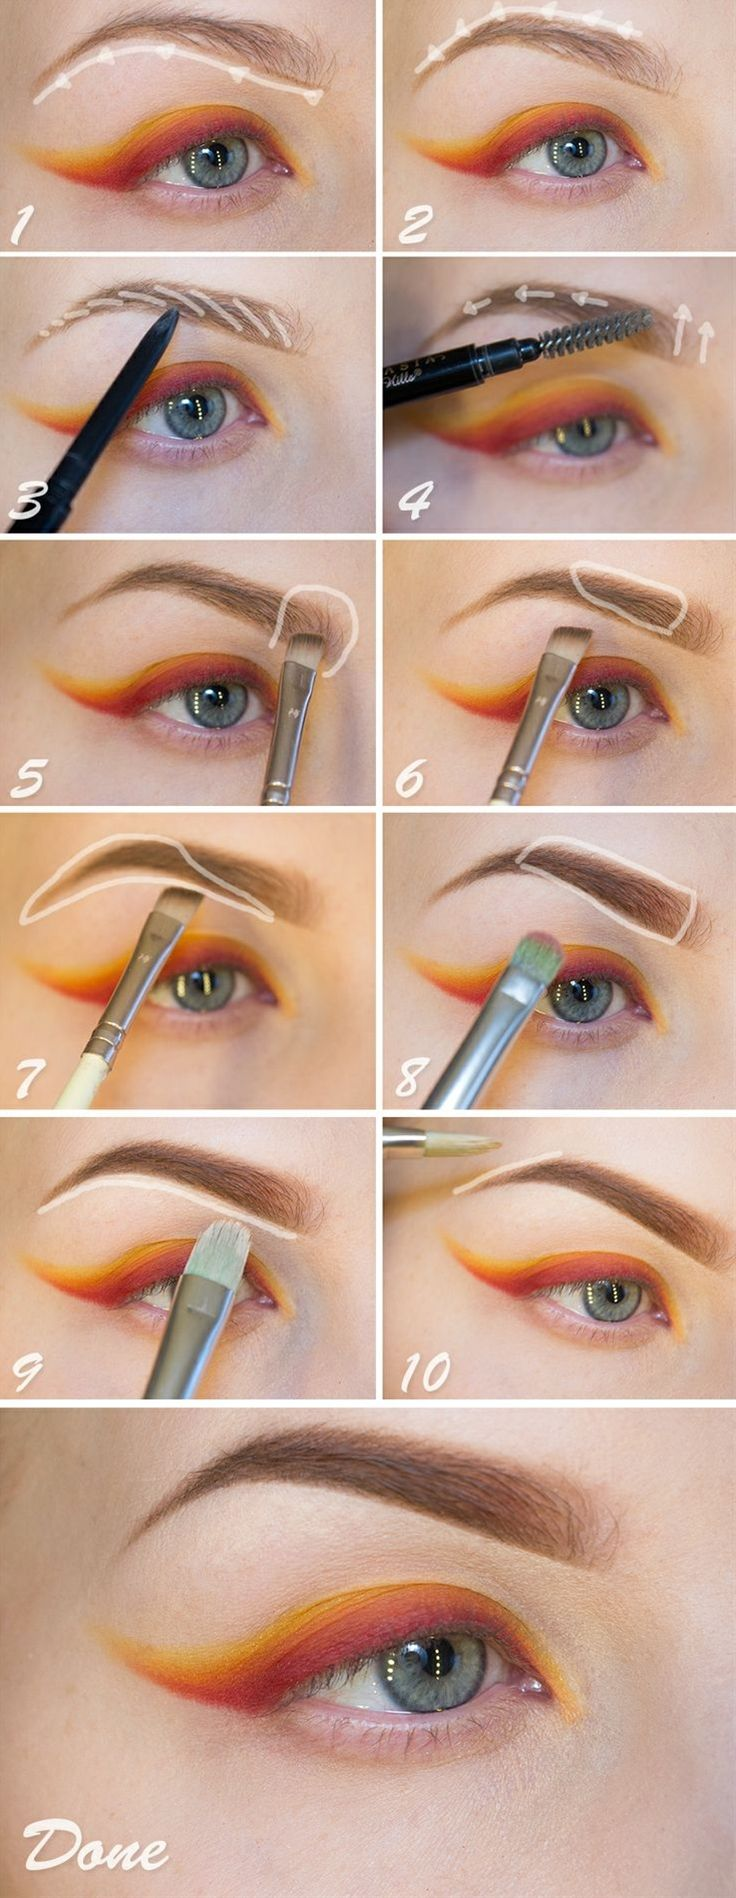 Eyebrows - Tutorial